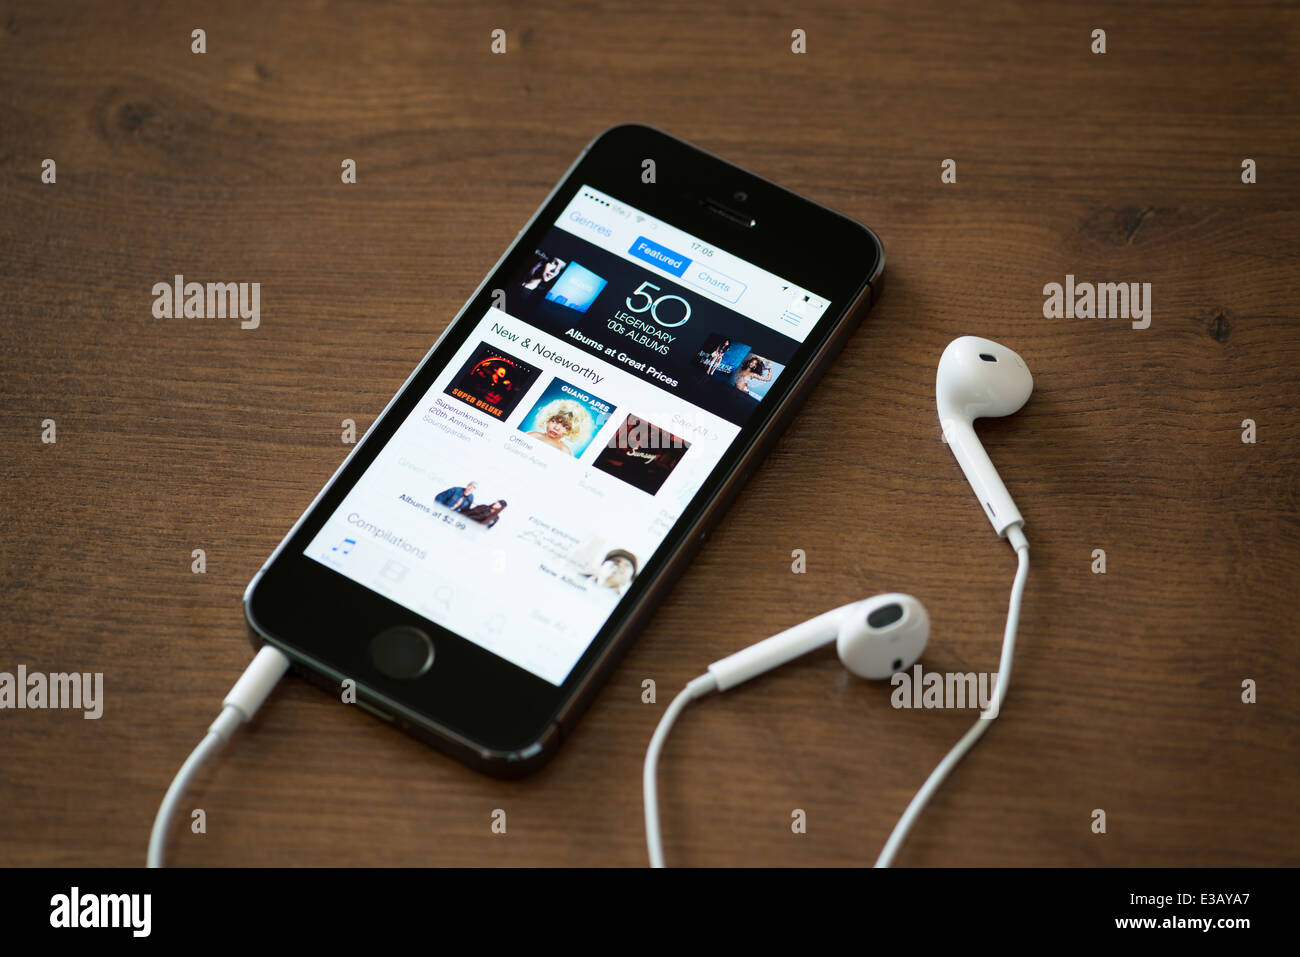 Brand new Apple iPhone 5S with iTunes store application on the screen lying on a desk with headphones Stock Photo